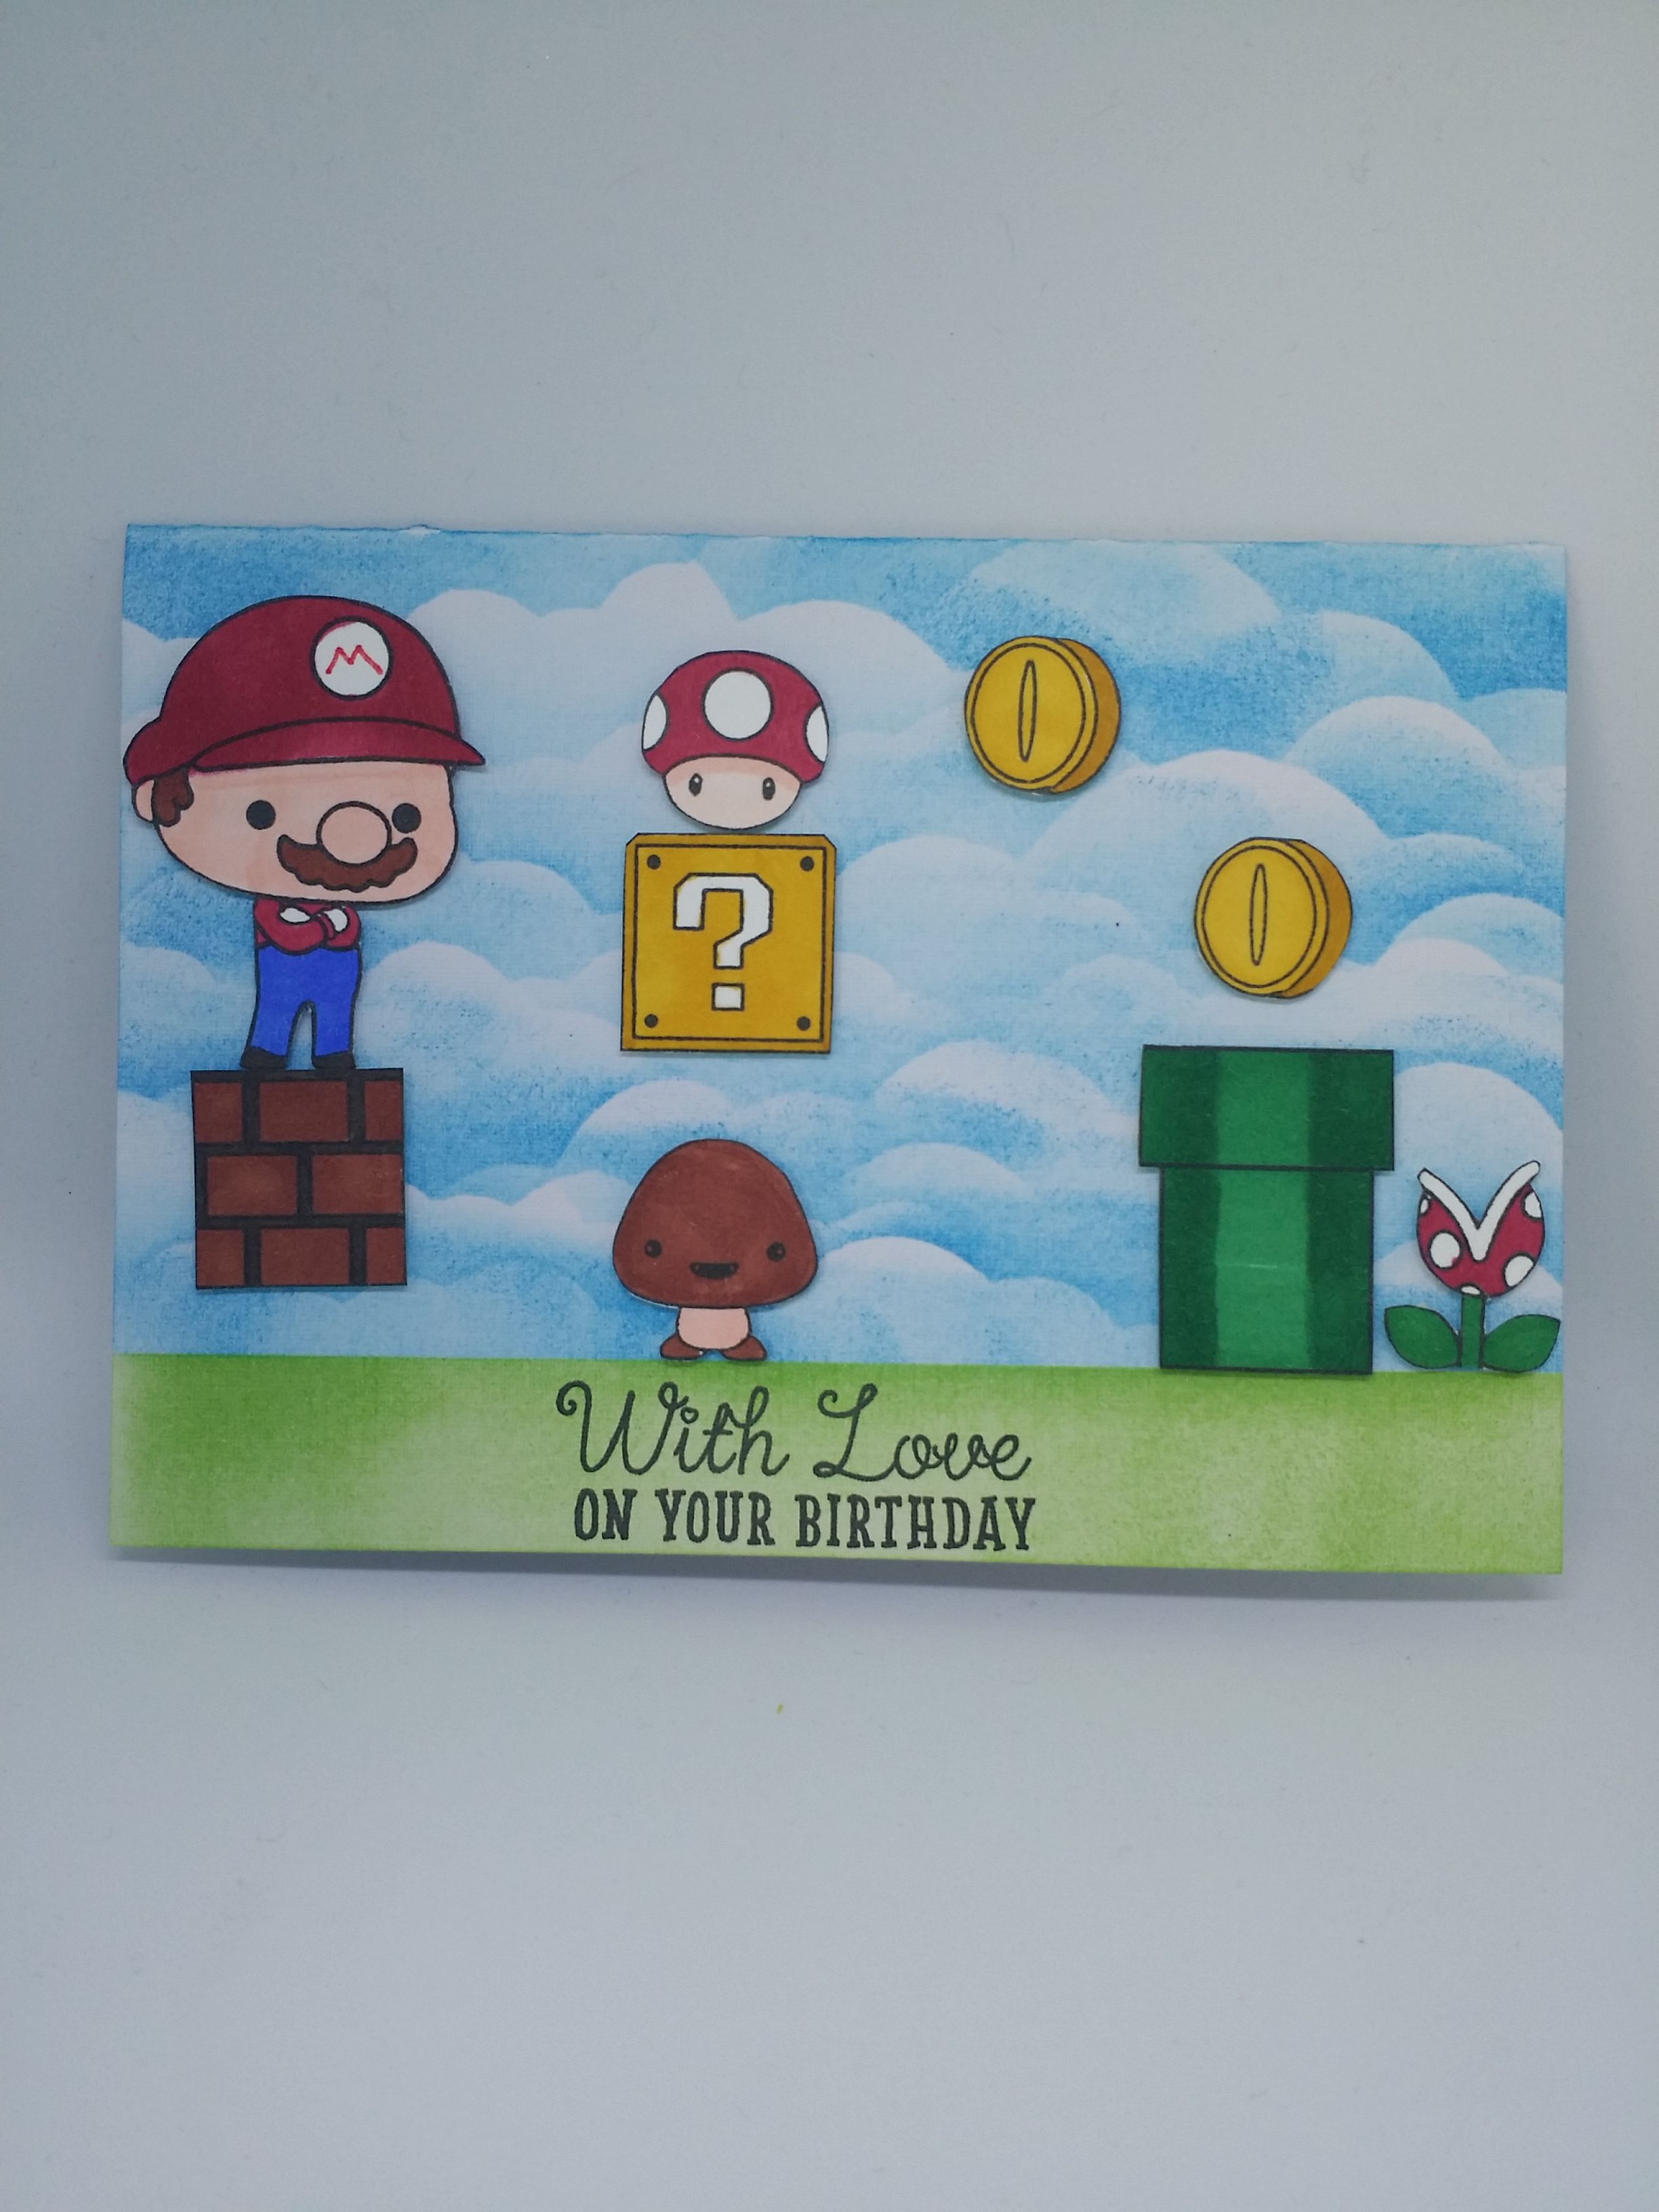 Super Mario Birthday Card Stamped Cards Birthday Cards Birthday Cards Diy